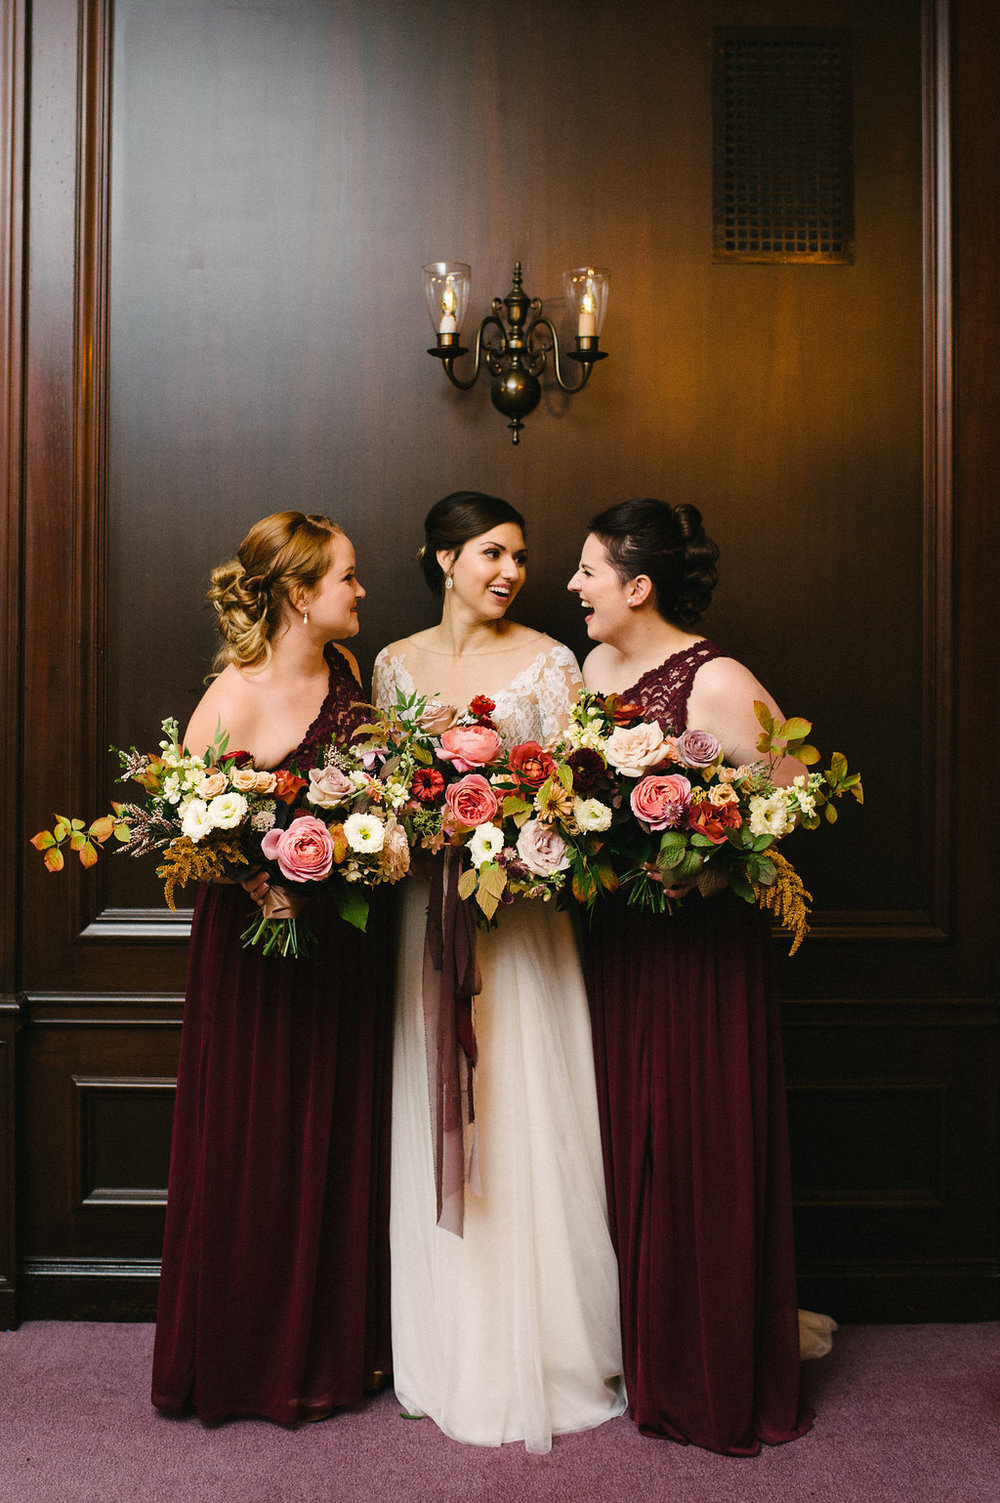 Hunt and Gather - Unstructured floral designs using ethically sourced and foraged materials.Address: 1667 Bloor St. W., TorontoEmail: hello@huntandgatherfloral.comContact: Tellie HuntPhone: (416) 985-8355Website: www.huntandgatherfloral.cominstagram ~ pinterest